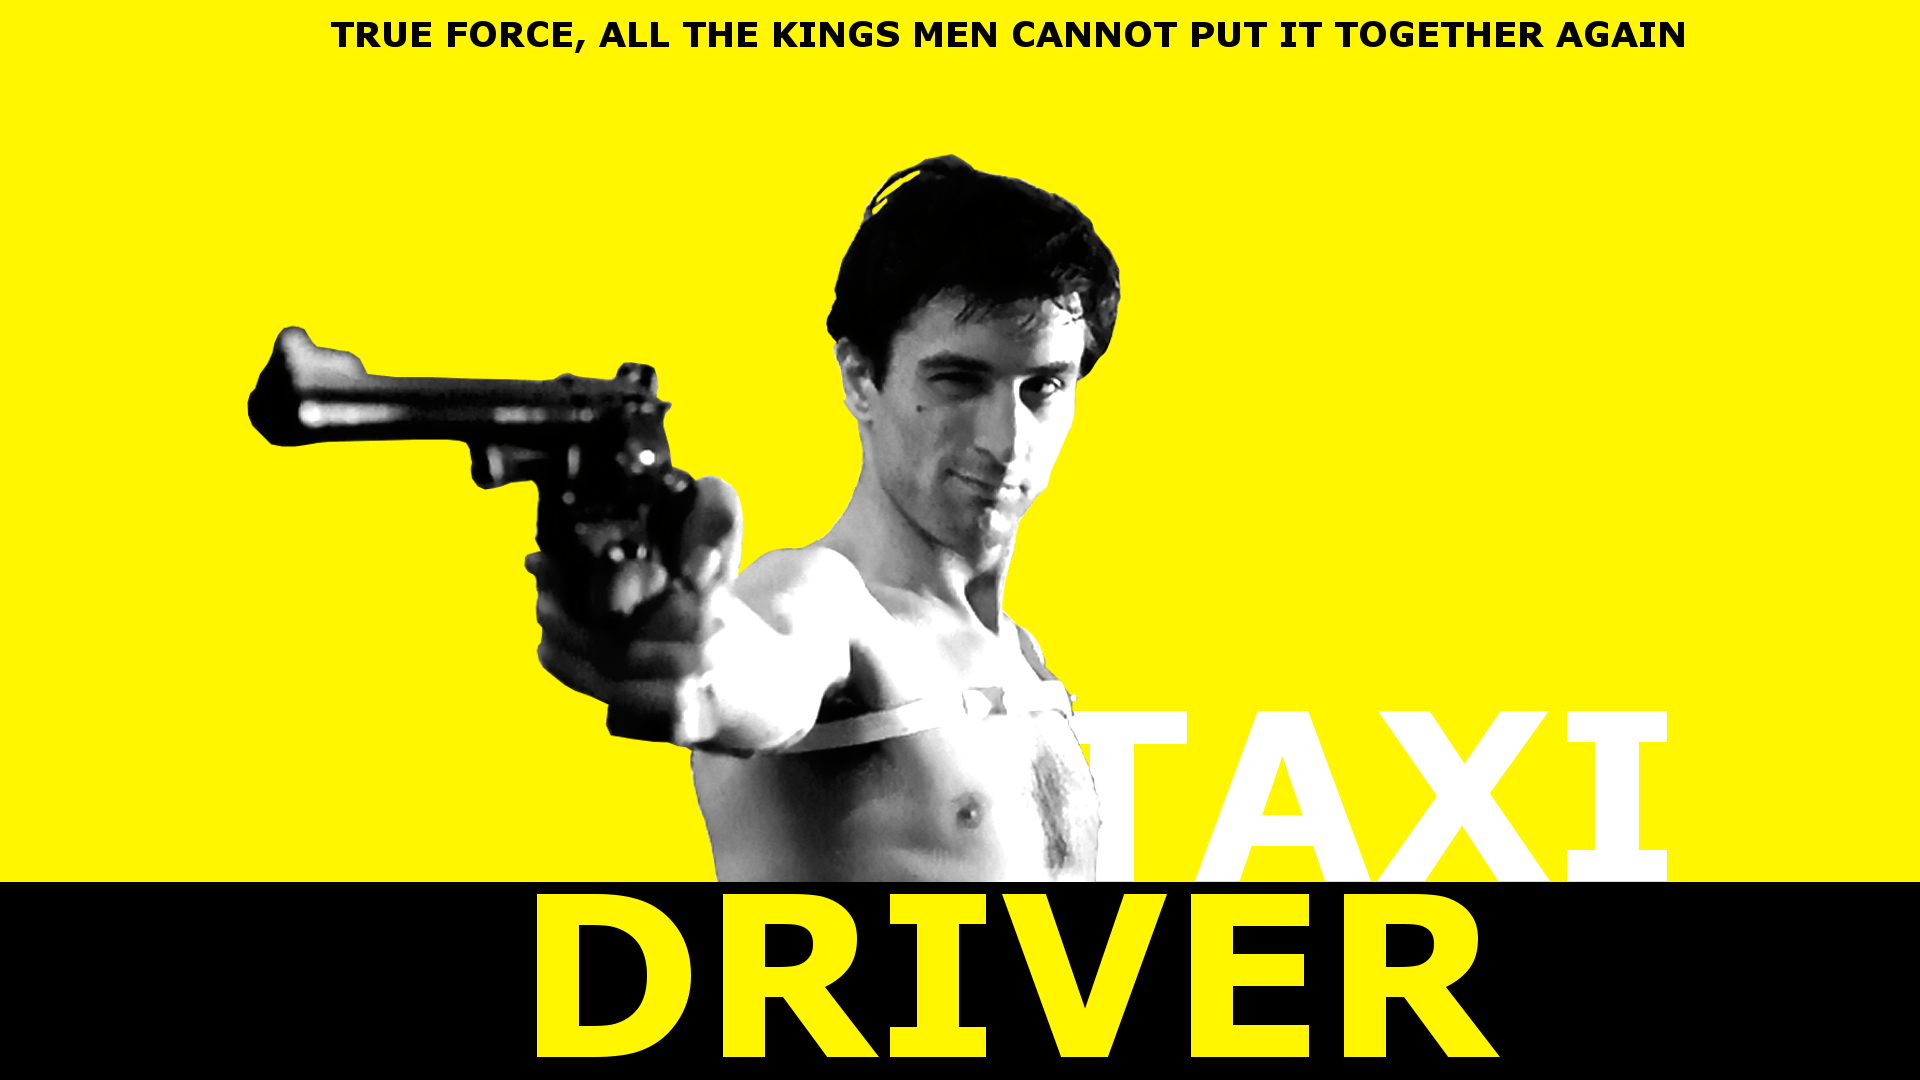 Download Taxi Driver Wallpapers Gallery